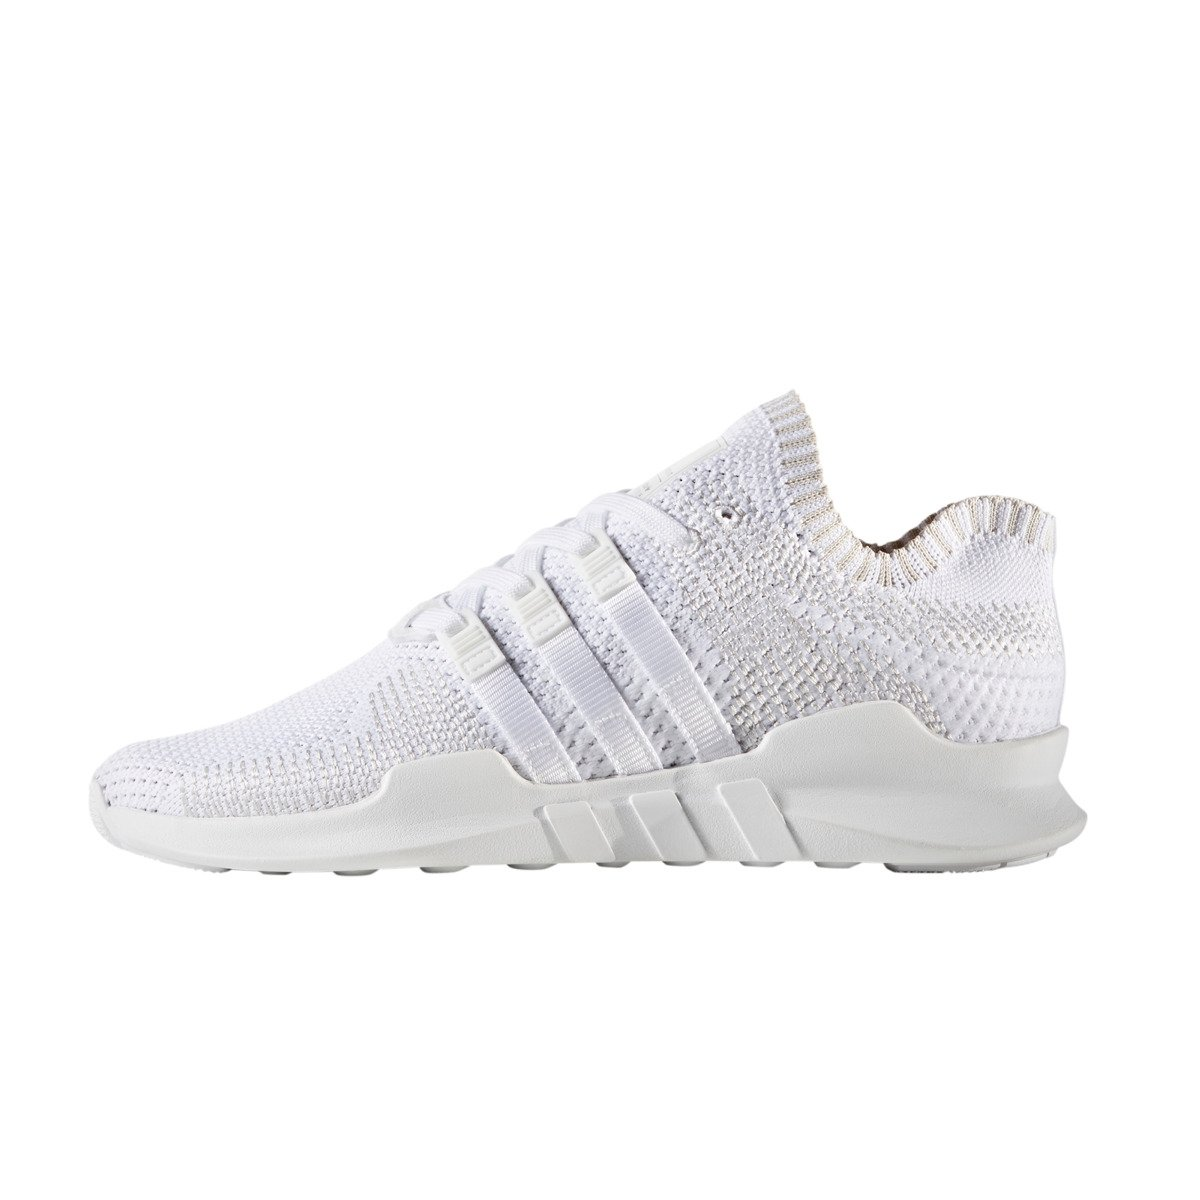 best cheap bc45f ae452 Adidas EQT Support ADV Primeknit - BY9391